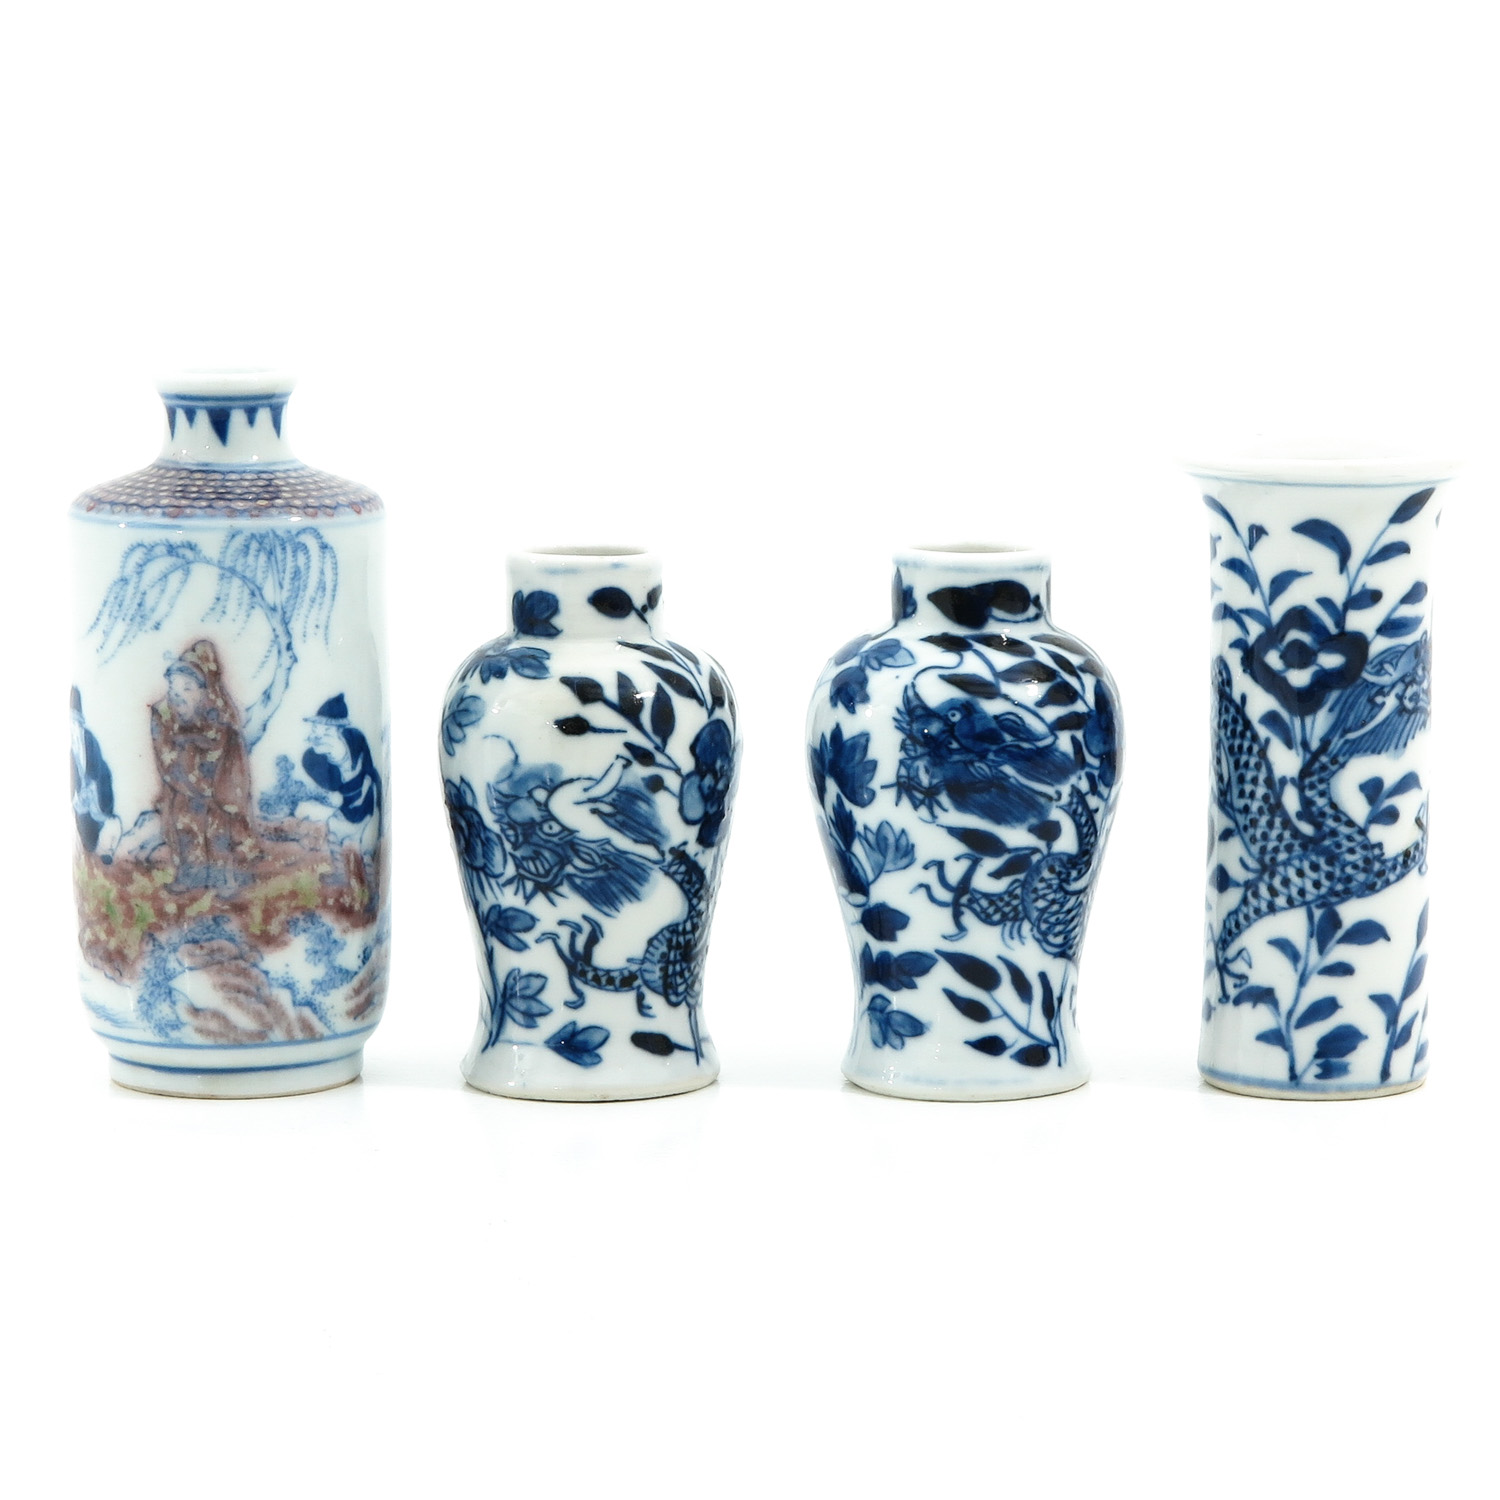 A Collection of 4 Miniature Vases